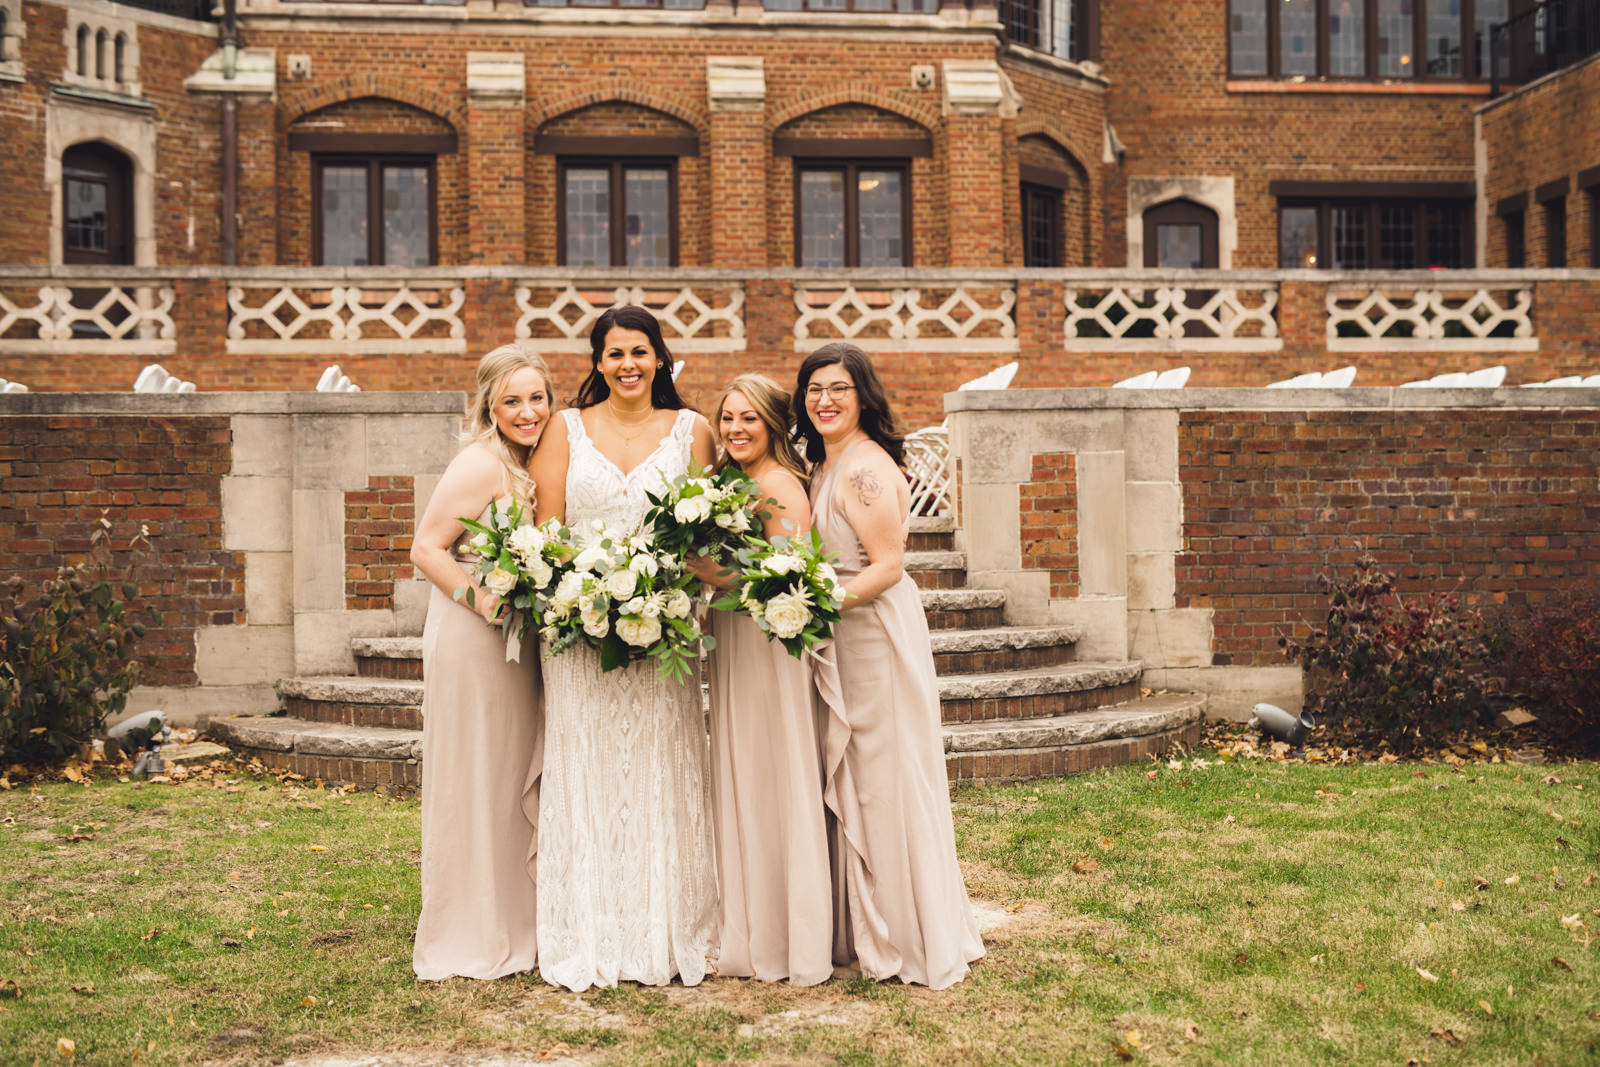 rollins-mansion-699-wedding-photographer-des-moines-iowa-m-c.jpg